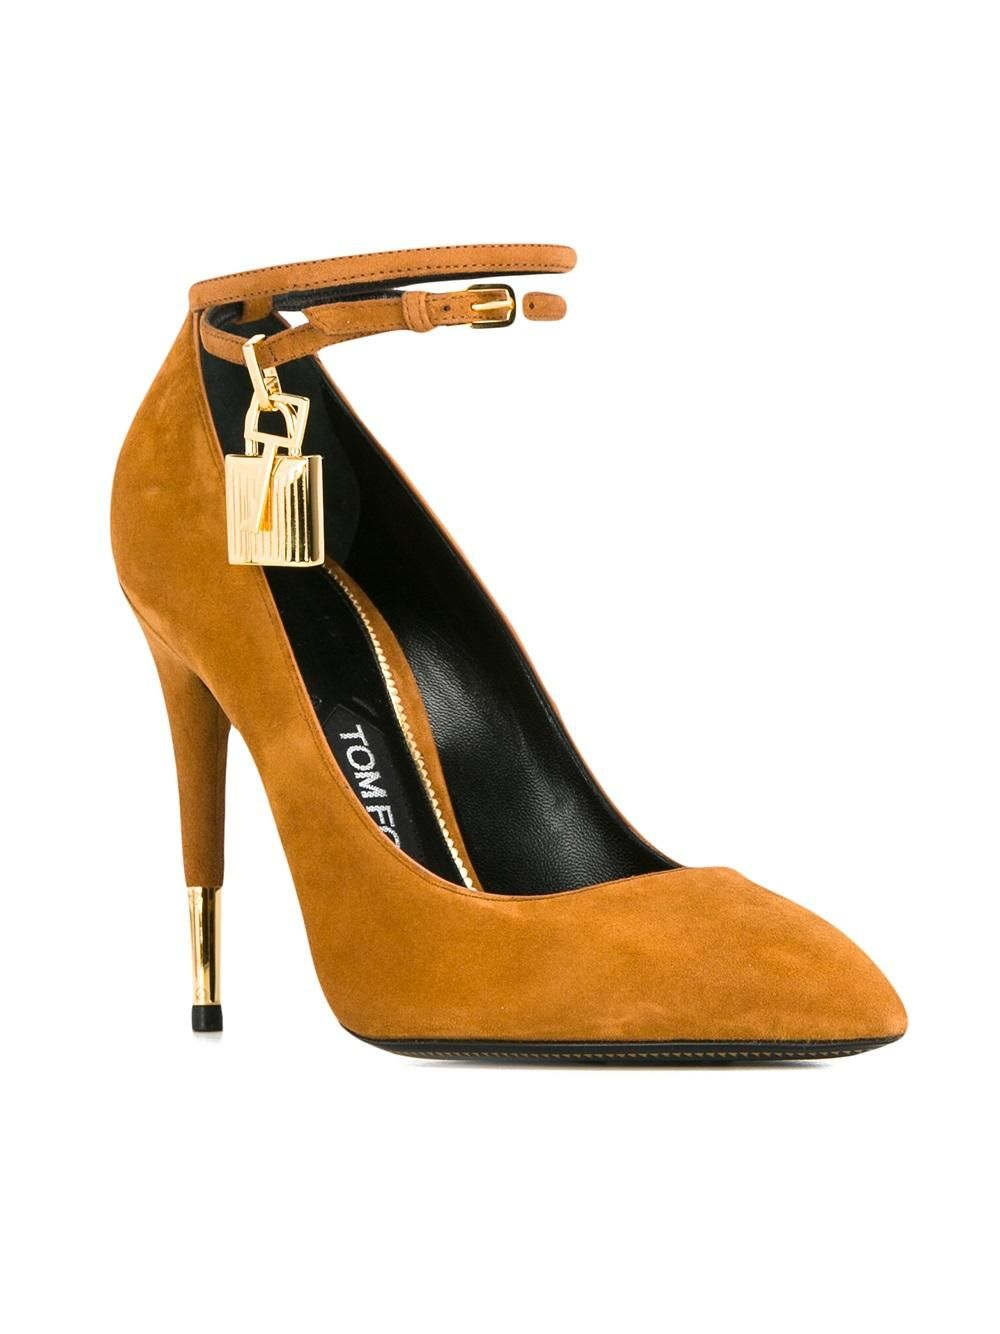 81ea2583943 Tom Ford Whiskey Suede and Gold Lock Ankle Strap Pumps